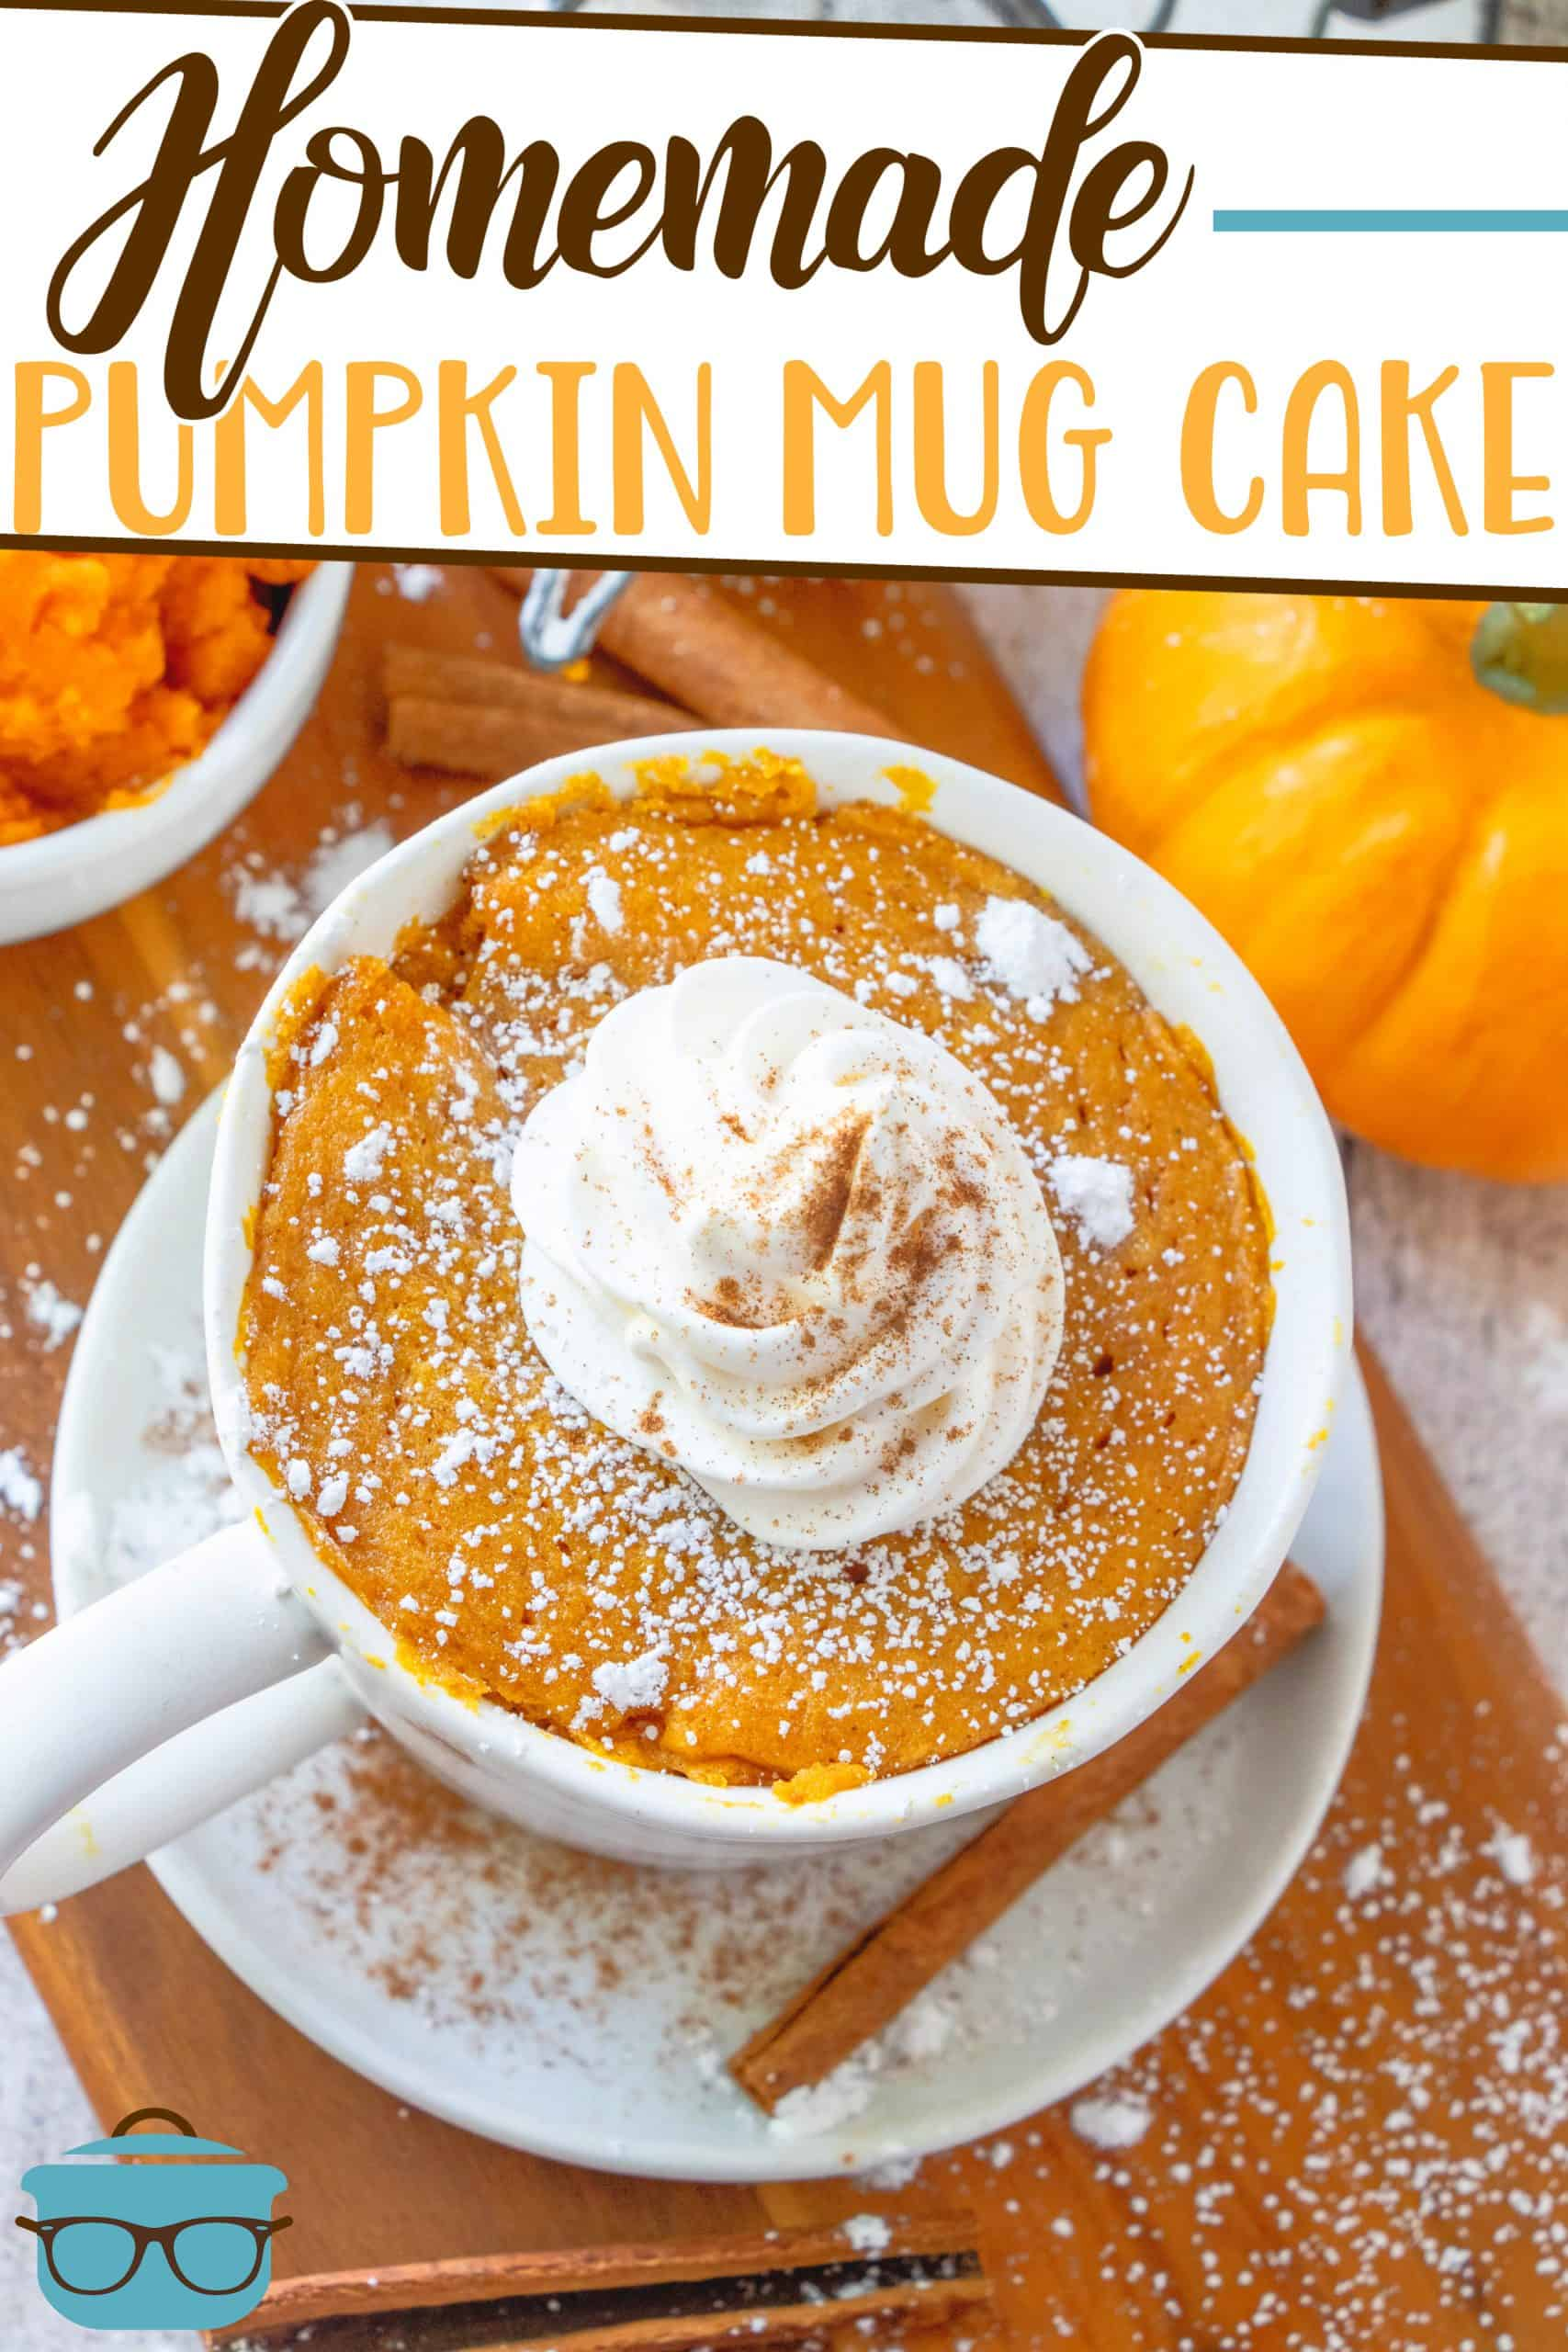 This Homemade Pumpkin Mug Cake recipe is made with easy-to-find ingredients and can easily be made within five minutes!